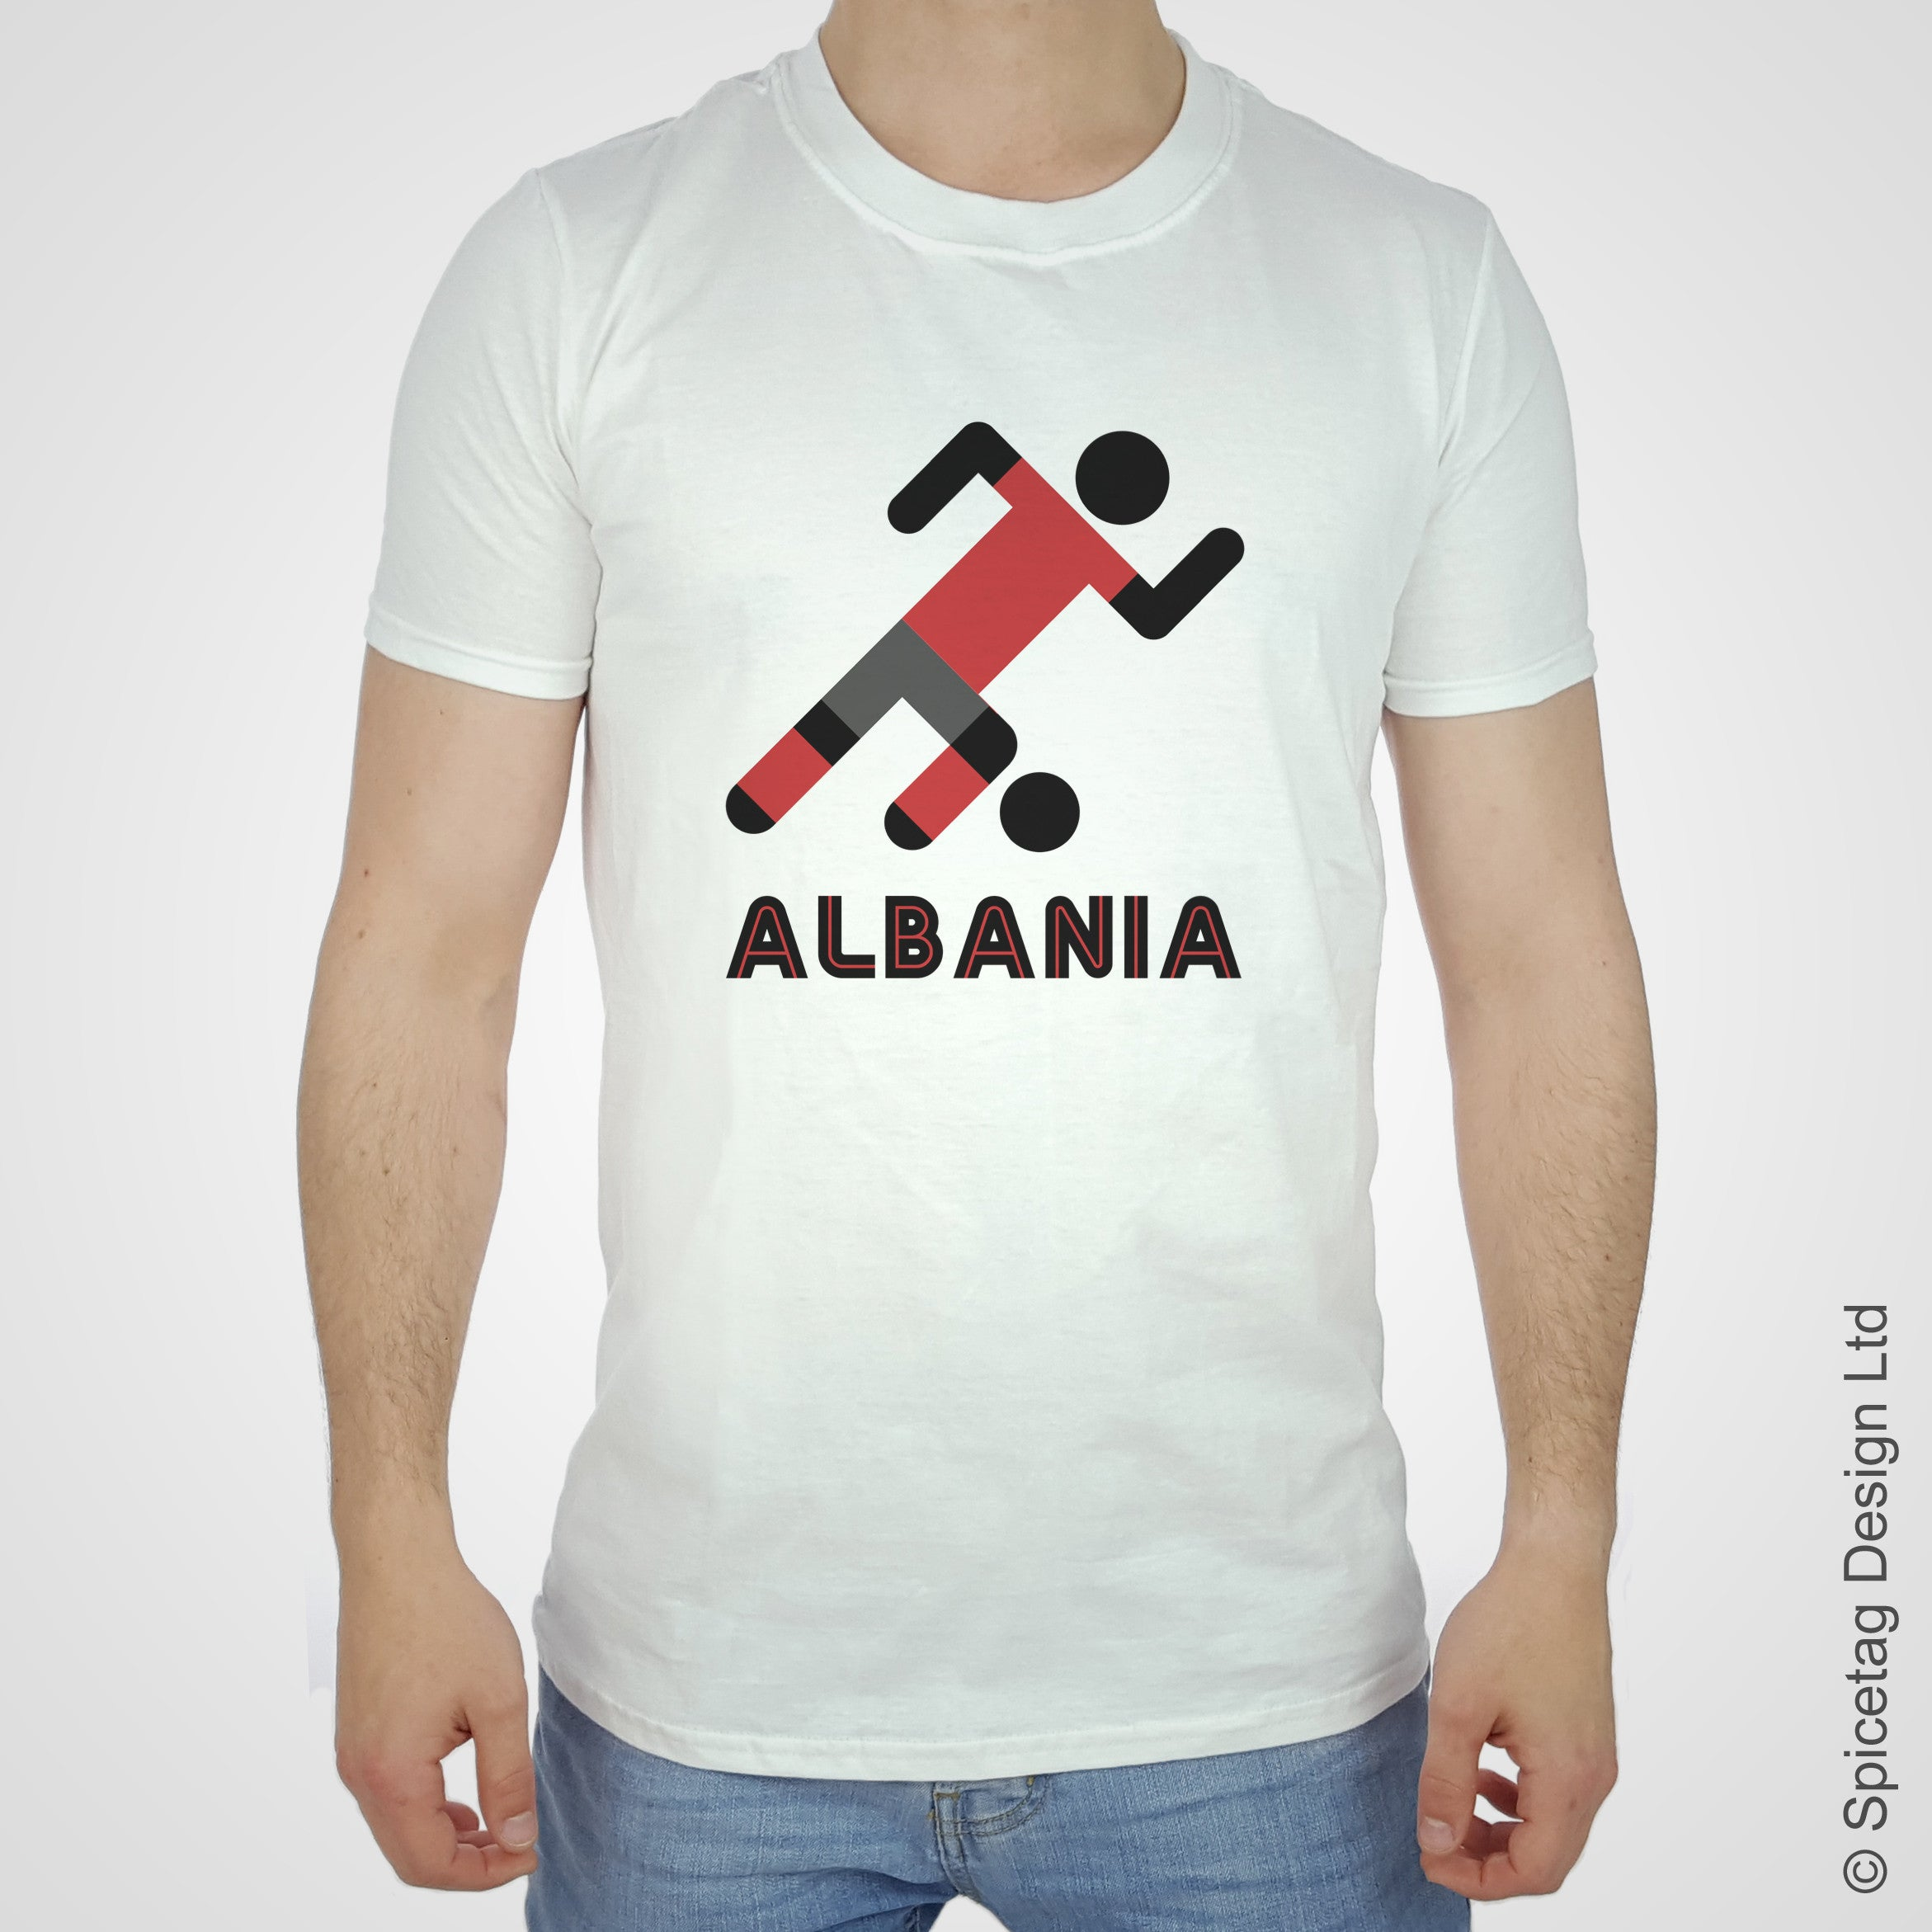 Albania Retro Football T-shirt